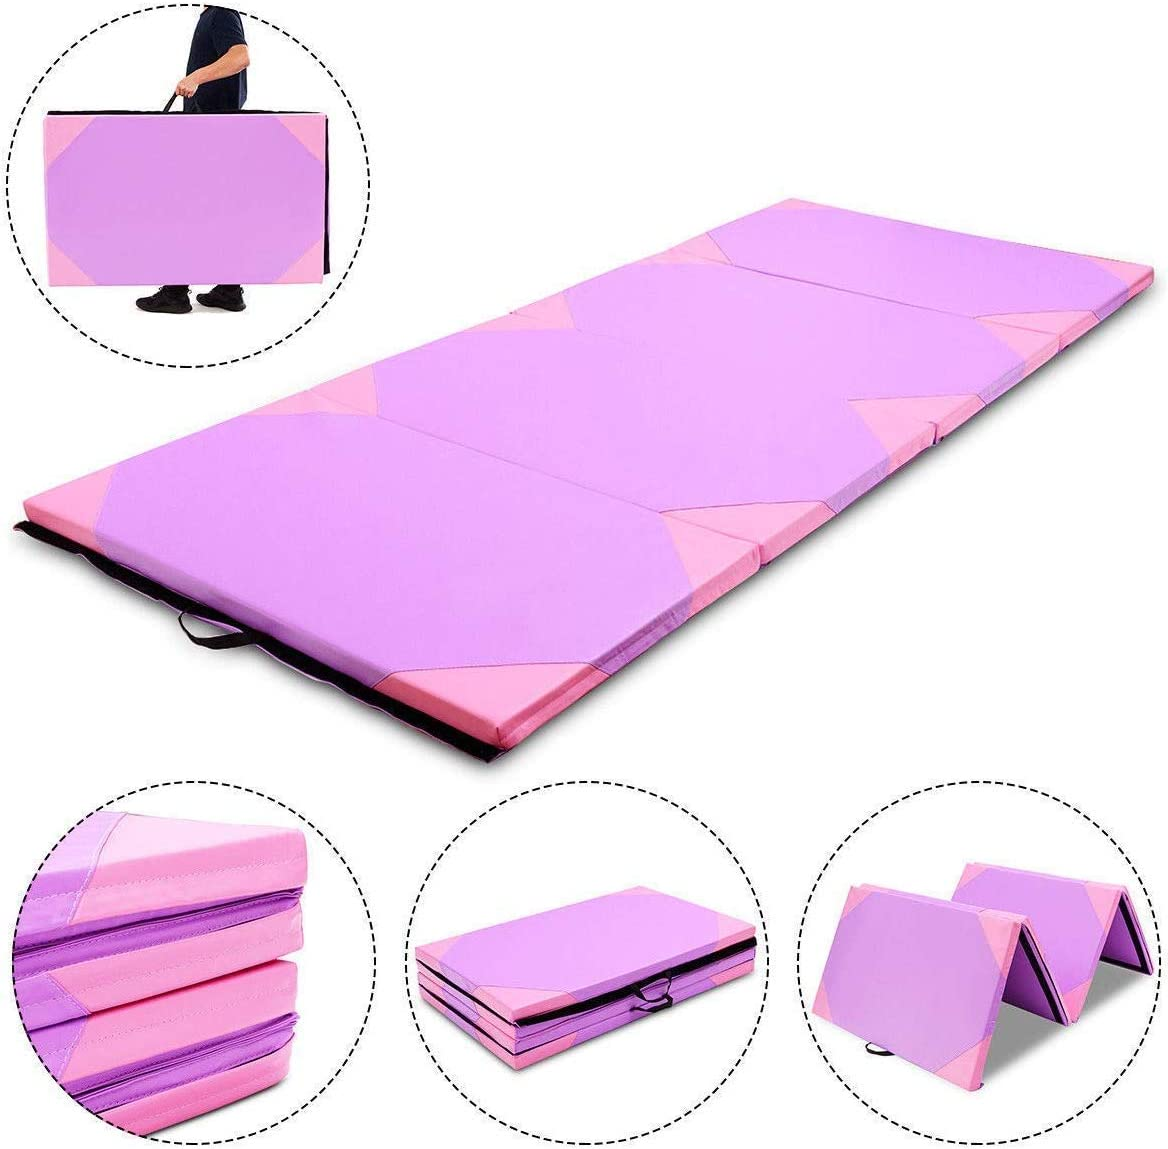 MAT EXPERT 4 x10 x2 Gymnastics Mat, Folding Exercise Aerobics Mat with Carrying Handles for Home Gym, Extra Thick High Density Anti-Tear Gymnastics Exercise Mat